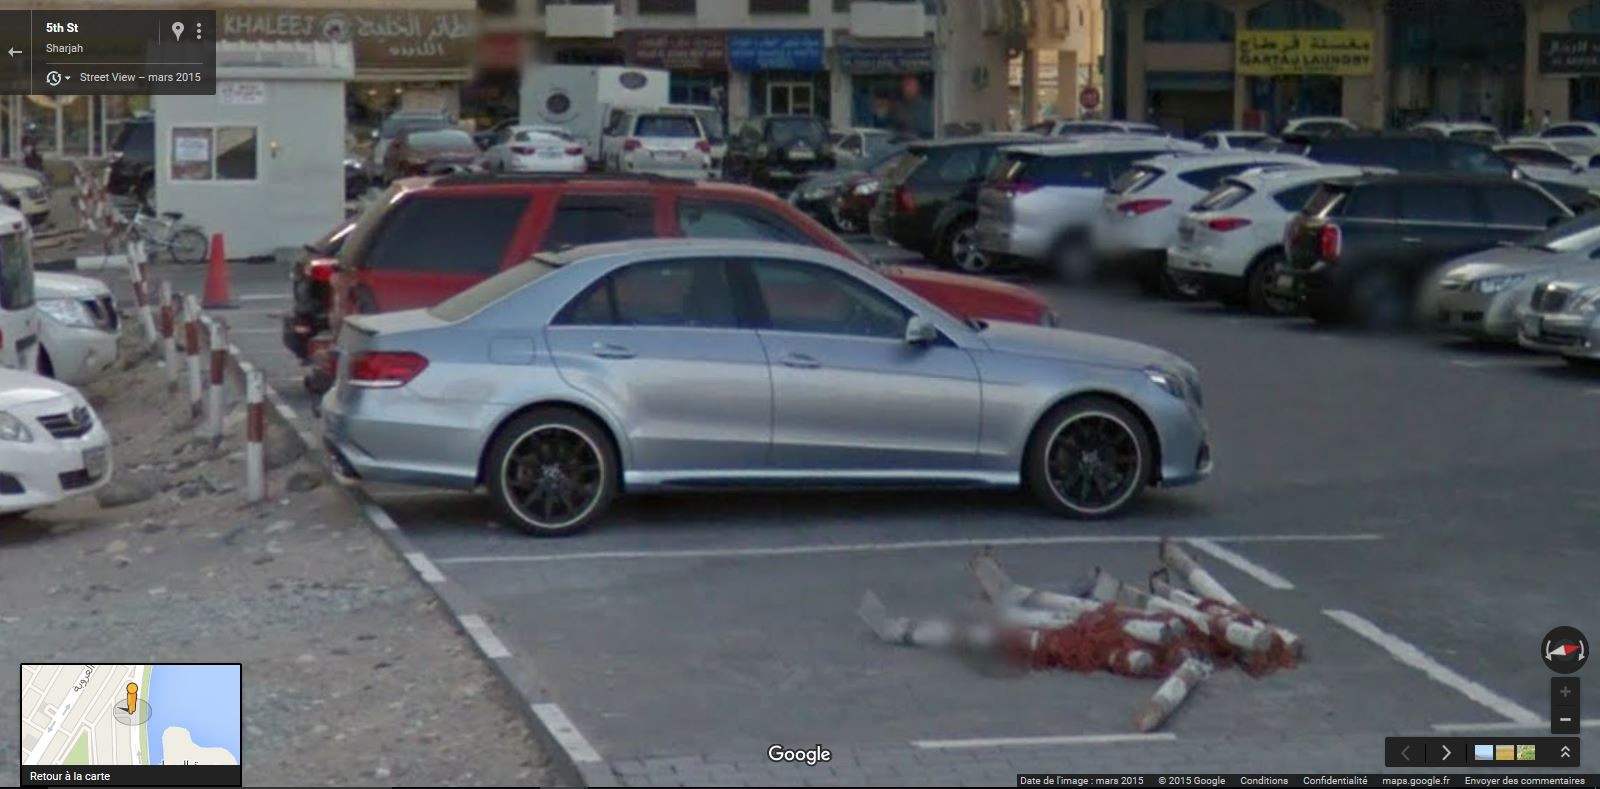 Street View Supercars Mercedes Benz E Amg S In Sharjah